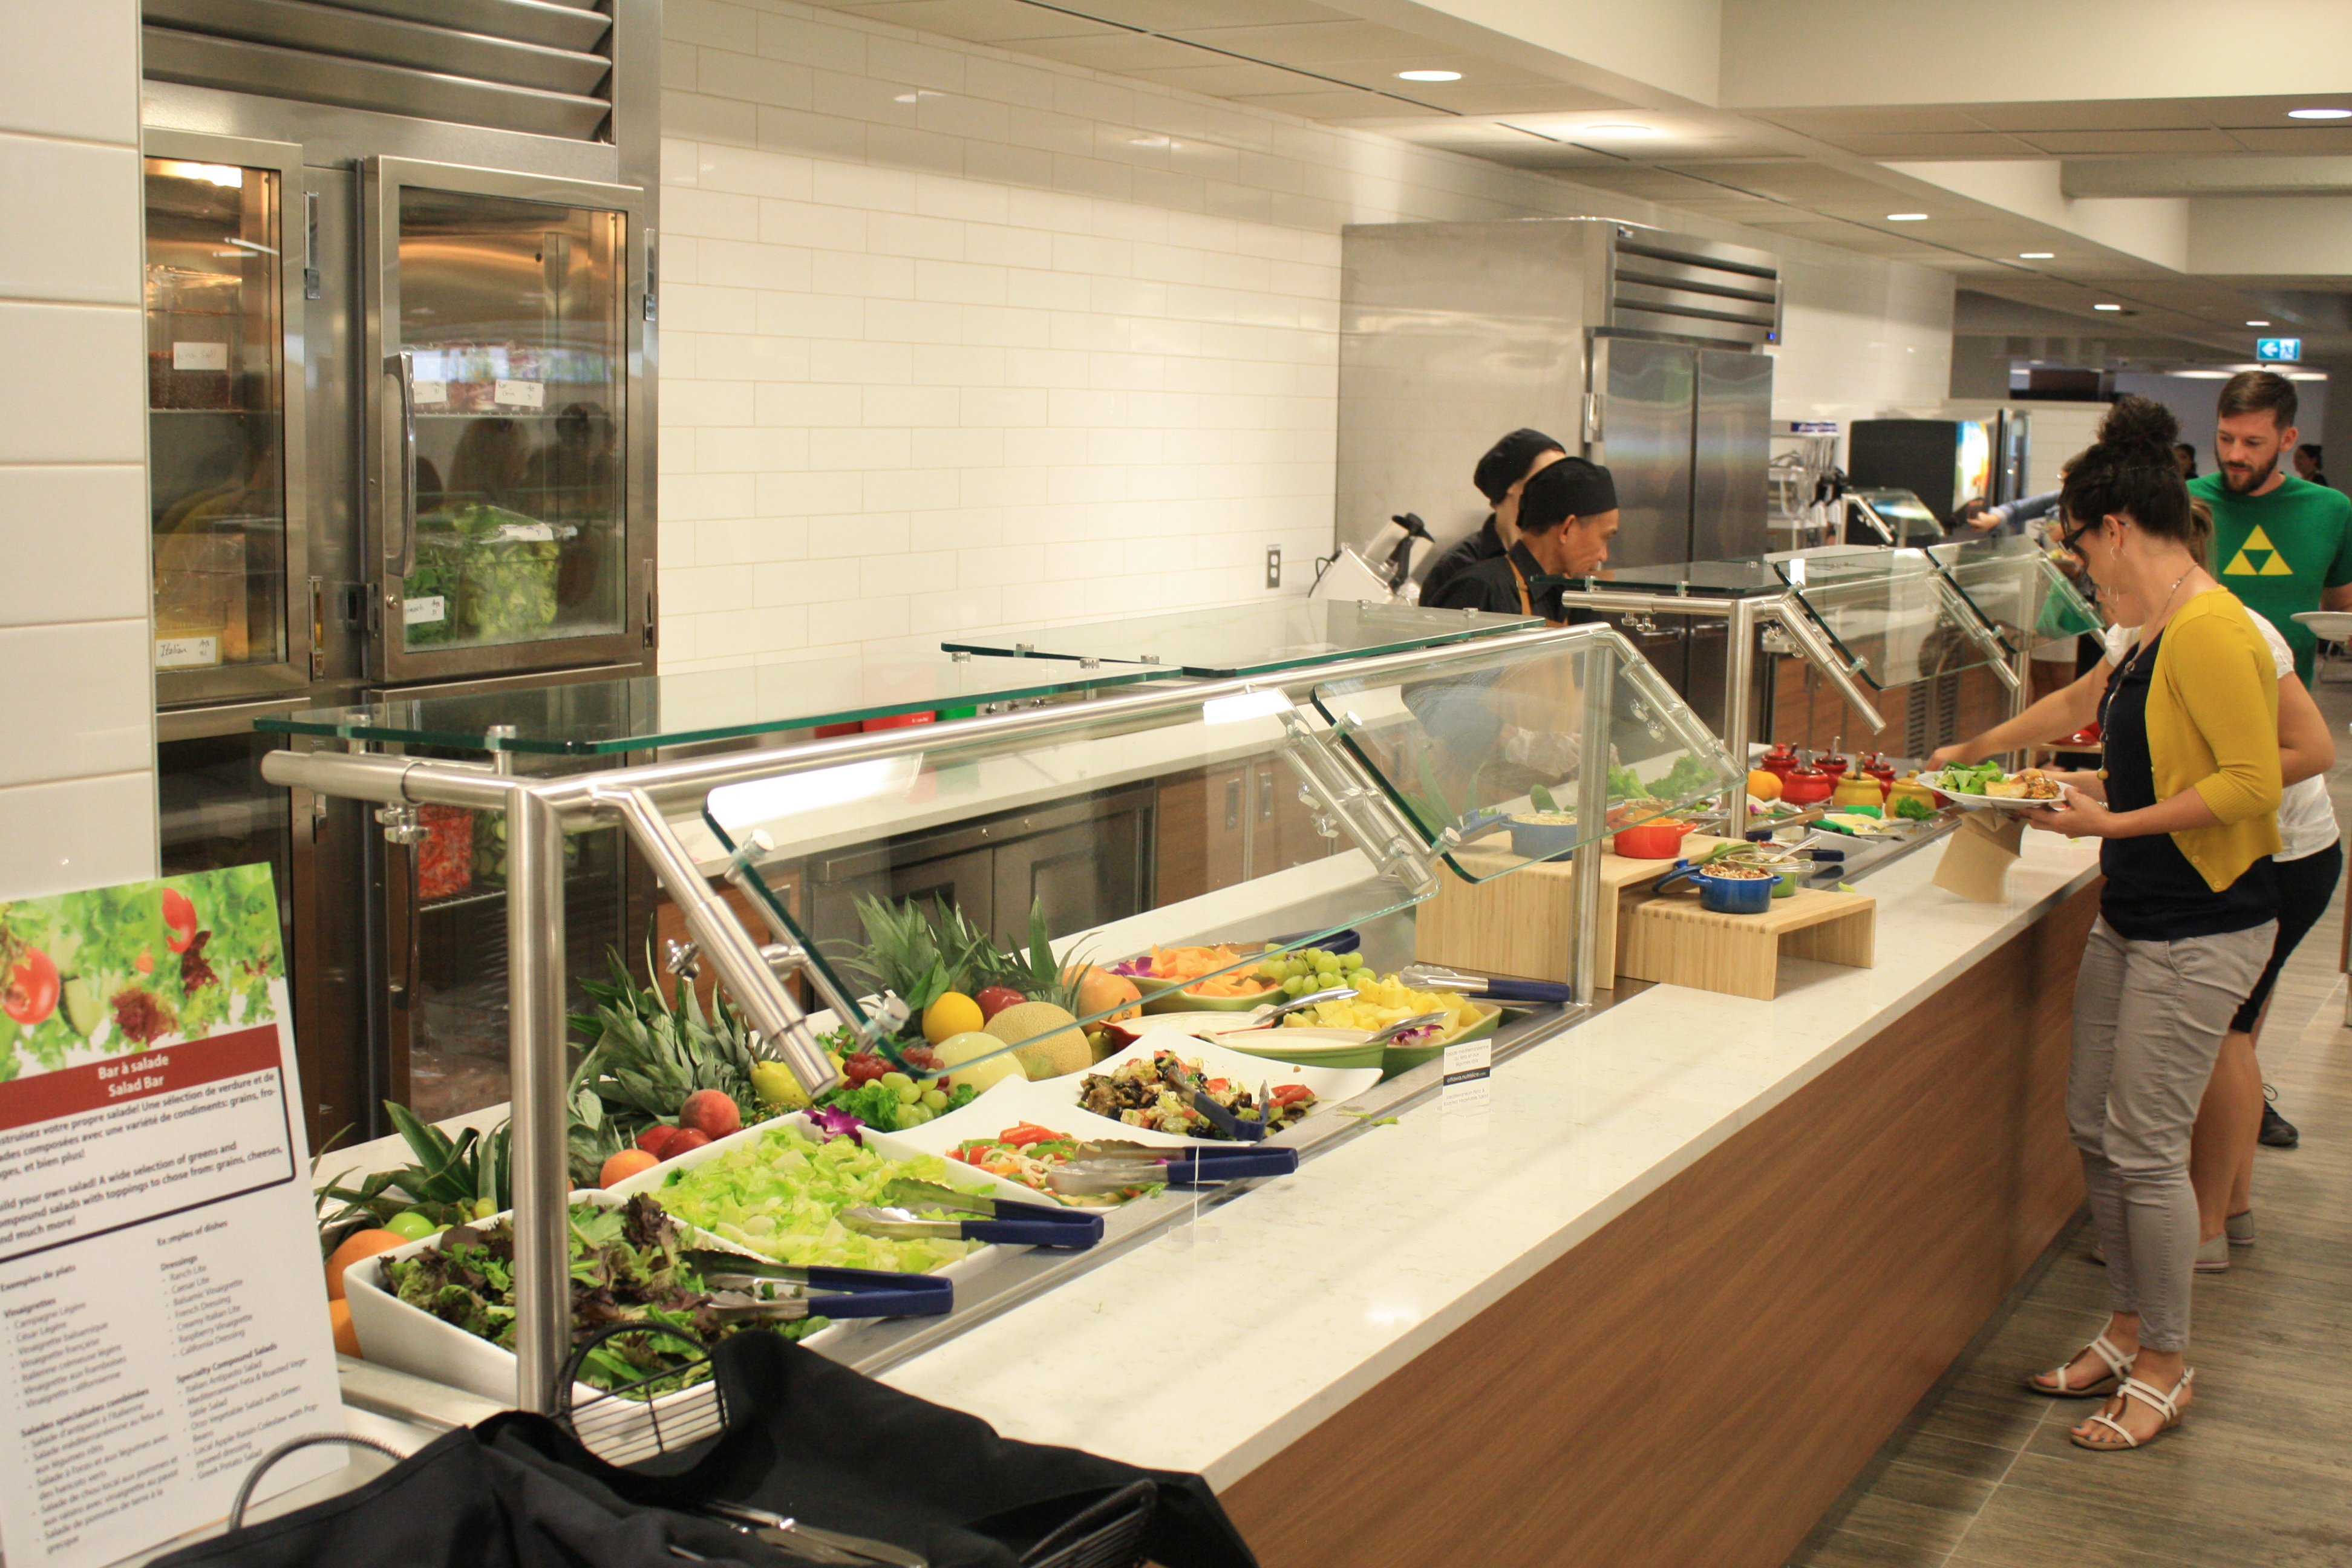 24 7 Dining Hall Opens Its Doors